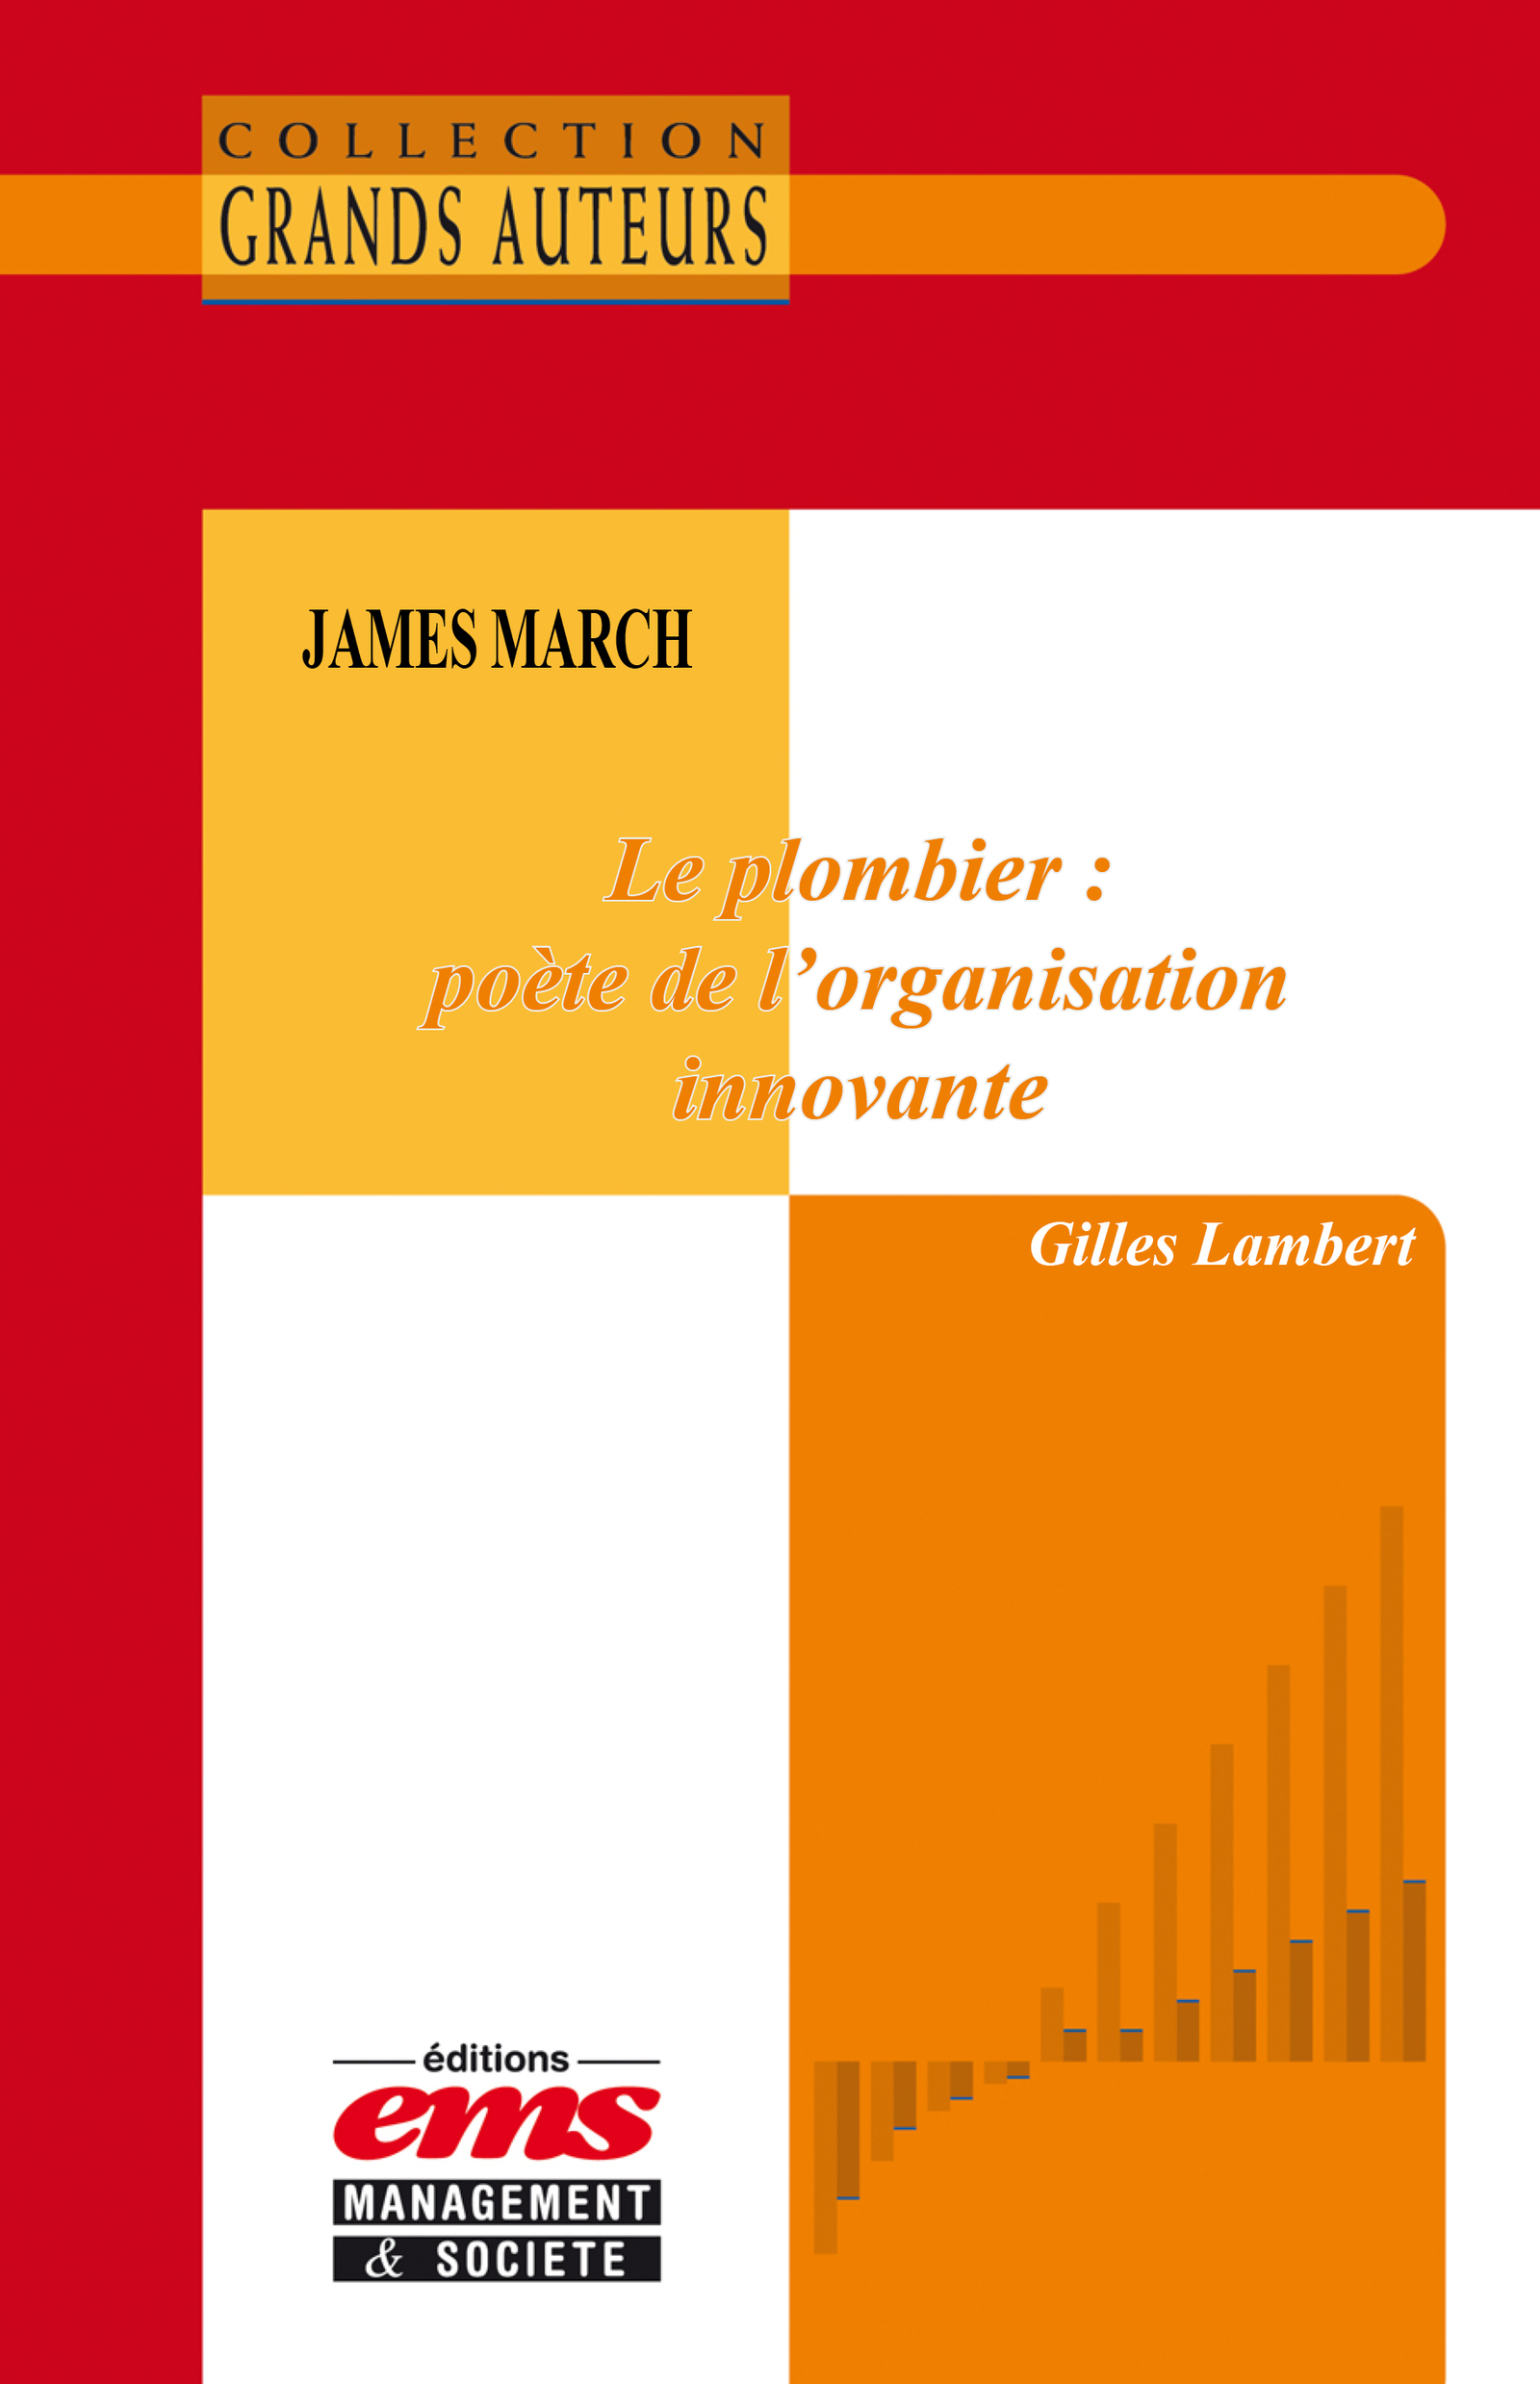 James March - Le plombier : poète de l'organisation innovante